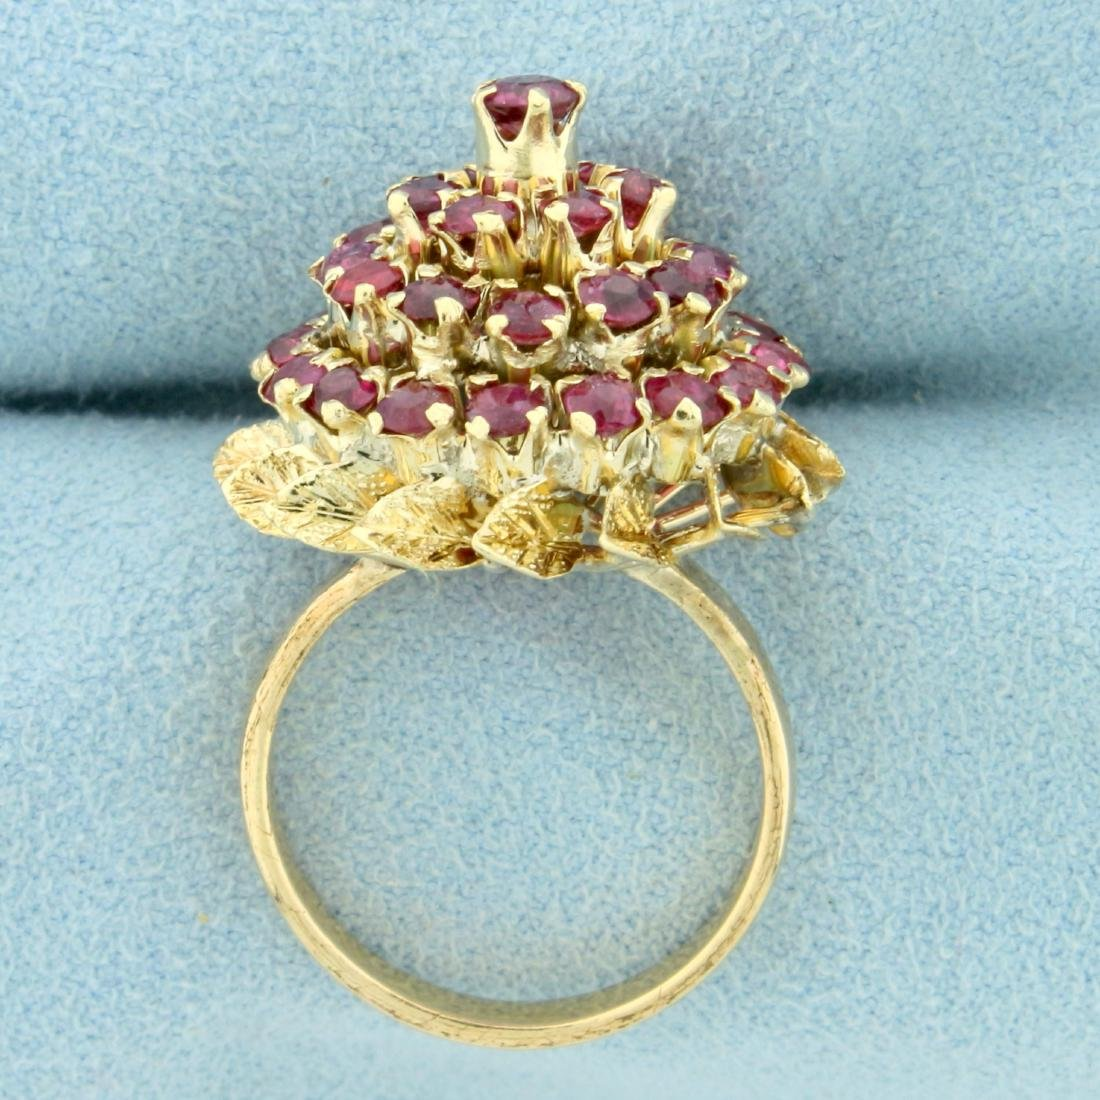 2ct TW Natural Ruby Ring in 18K Yellow Gold - 3